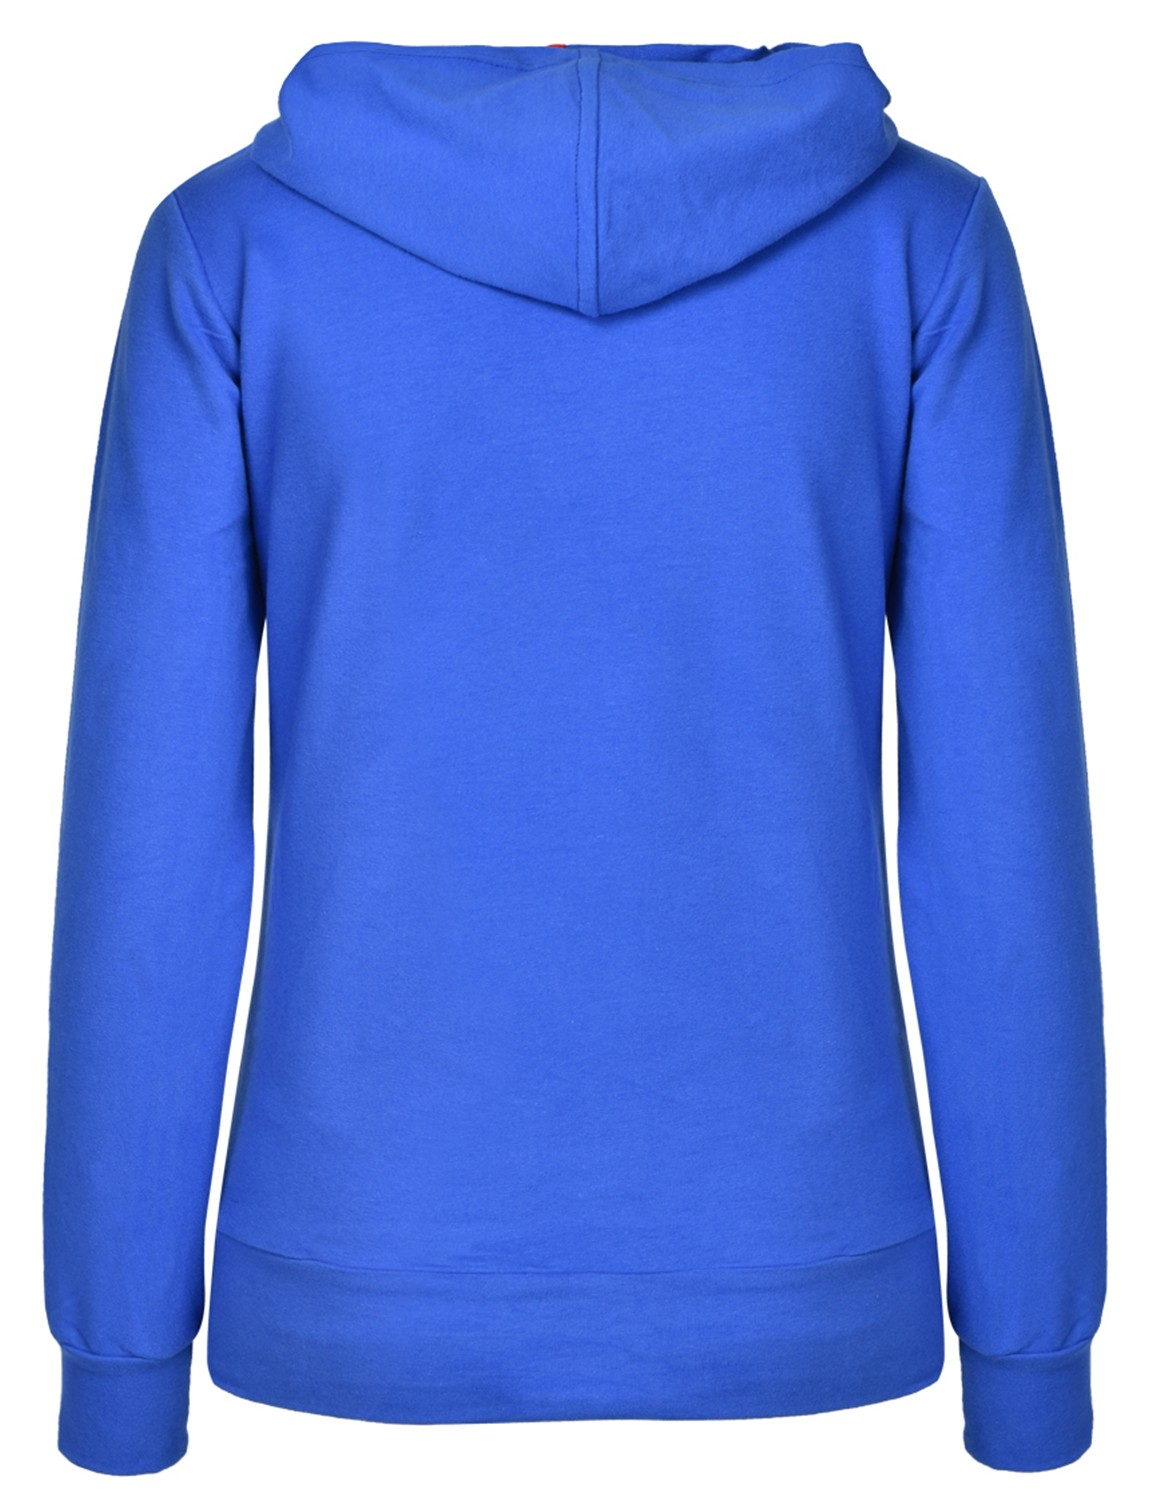 DOUBLE RED Trademark Sweatshirt Blue